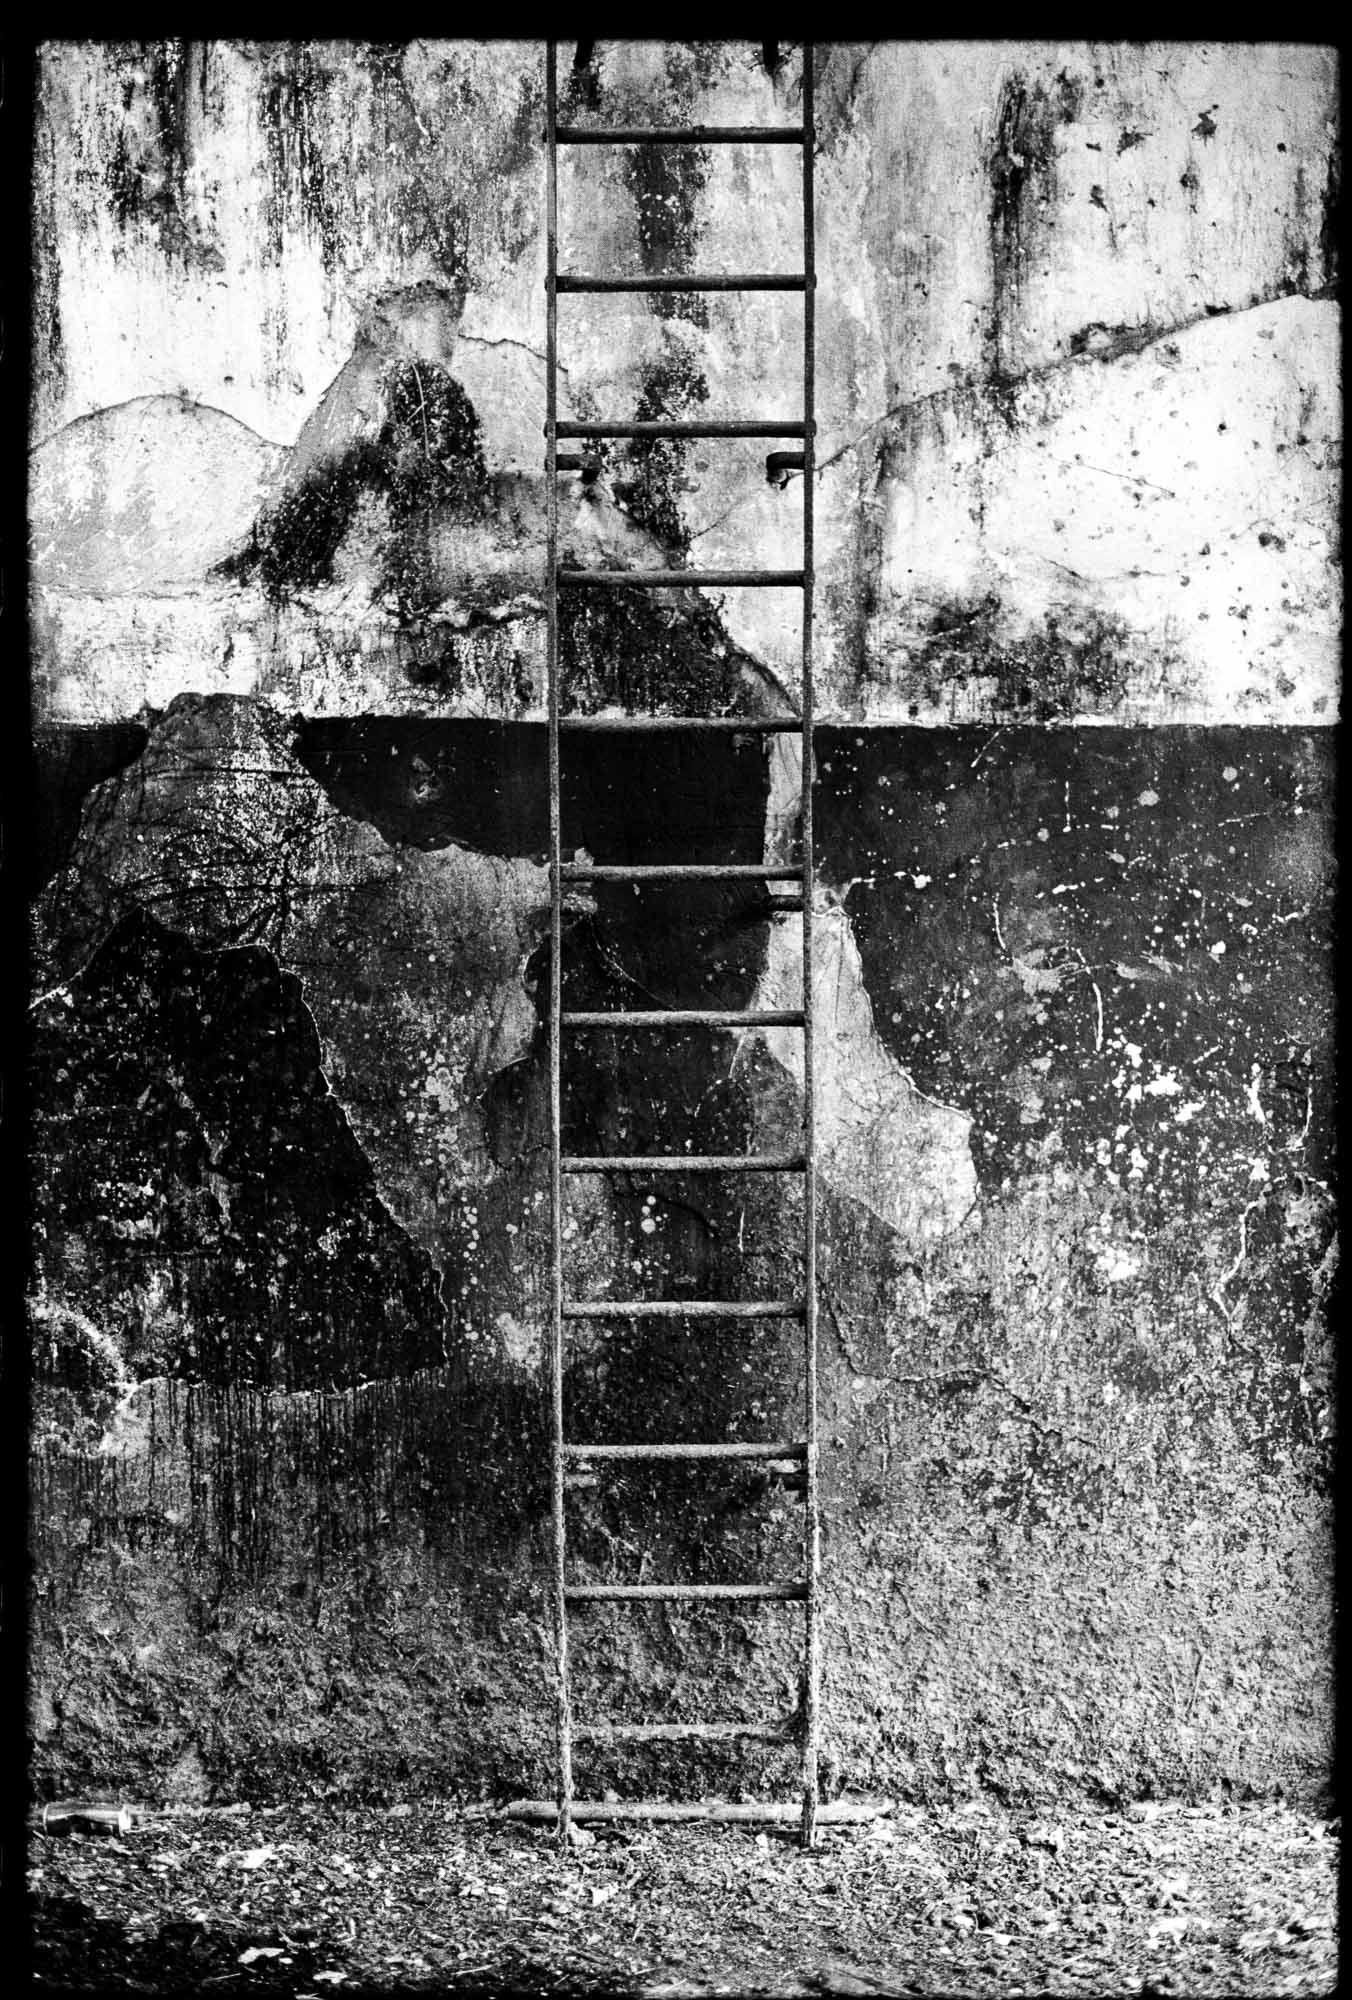 A decayed metal ladder bolted to the wall, shot in black and white using a Canon AE1-P